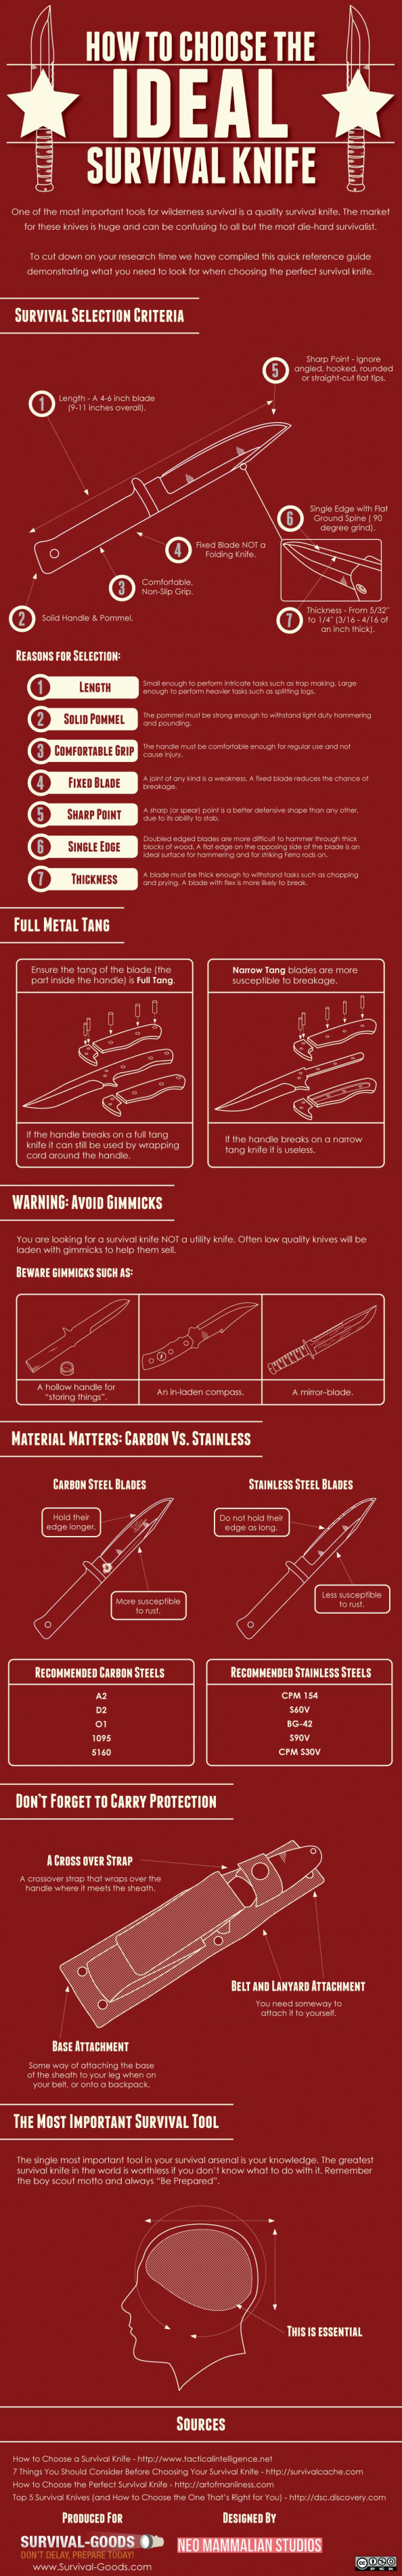 How to choose the ideal survival knife Infographic